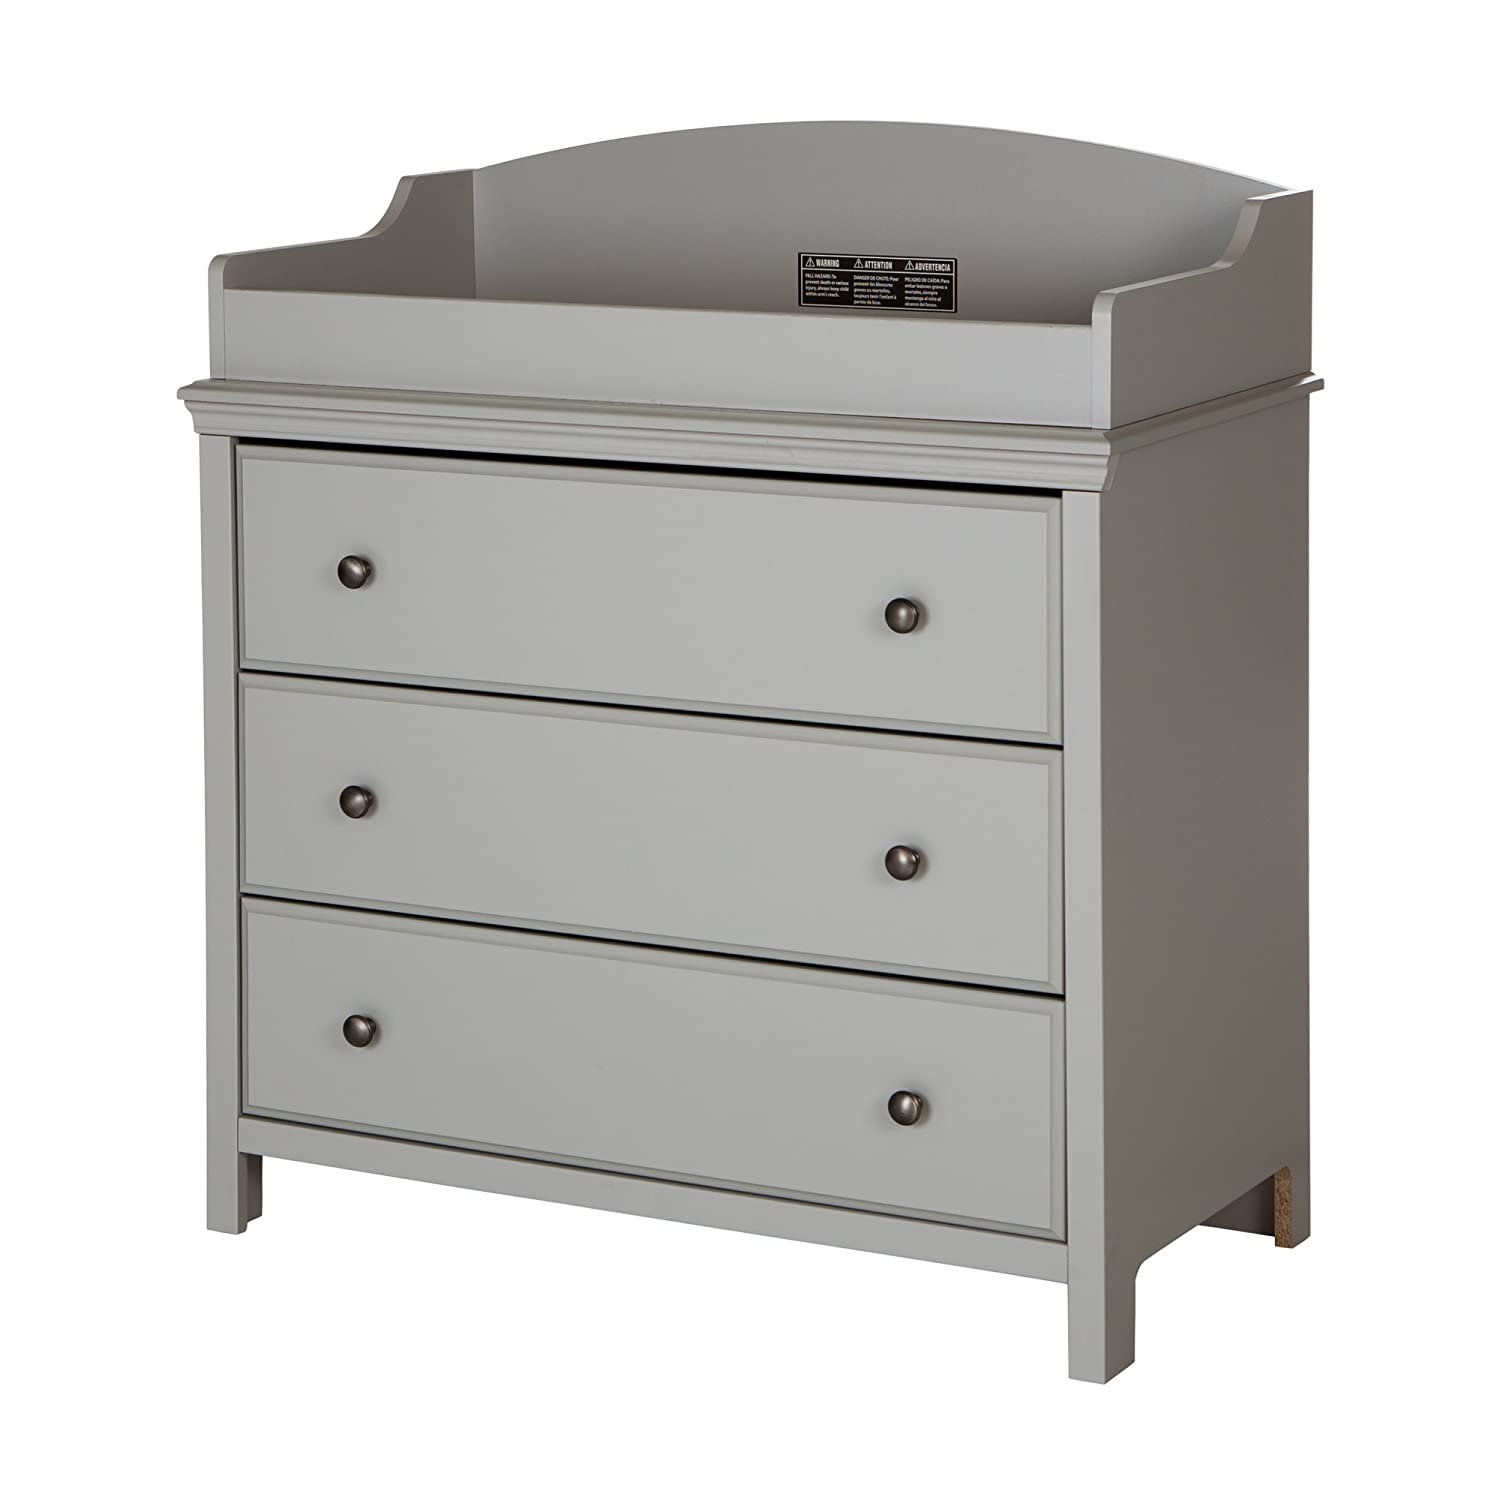 South Shore Furniture 9020330 Cotton Candy Changing Table with Drawers, Soft Gray